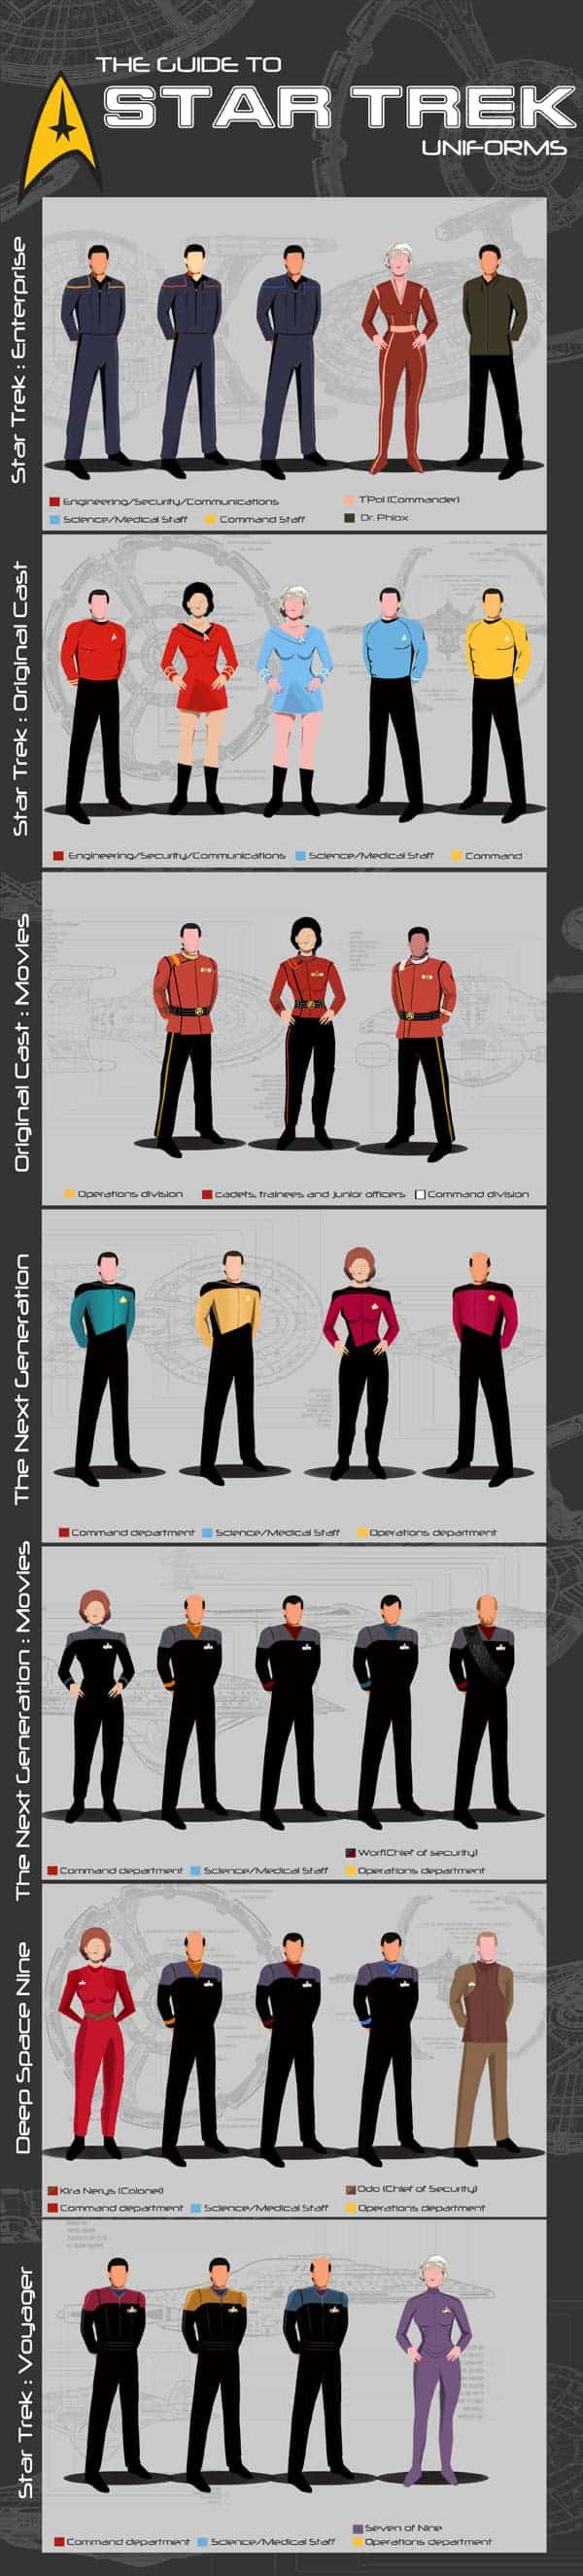 A Guide to Star Trek Uniforms Infographic